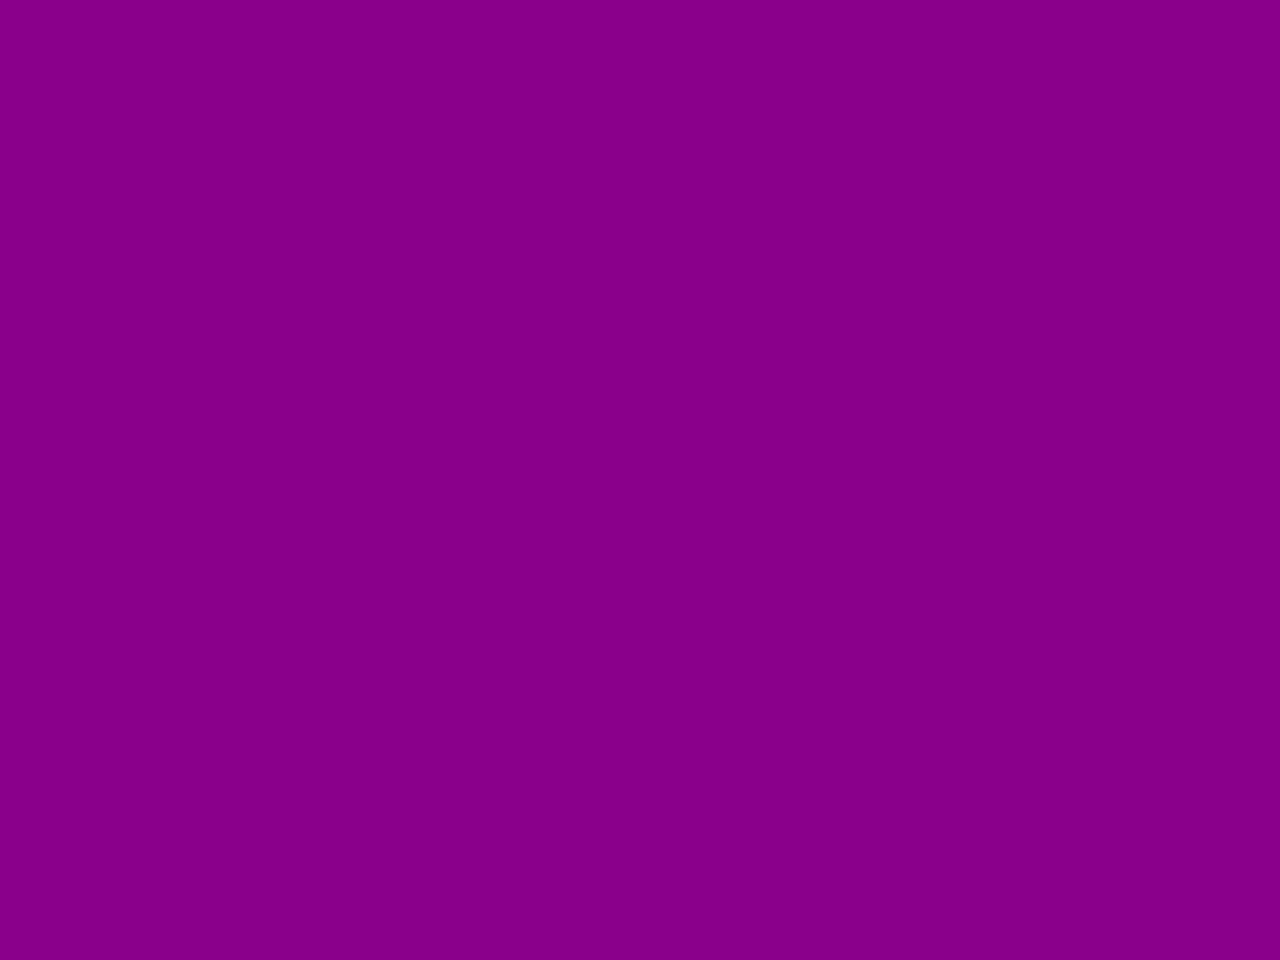 1280x960 Dark Magenta Solid Color Background